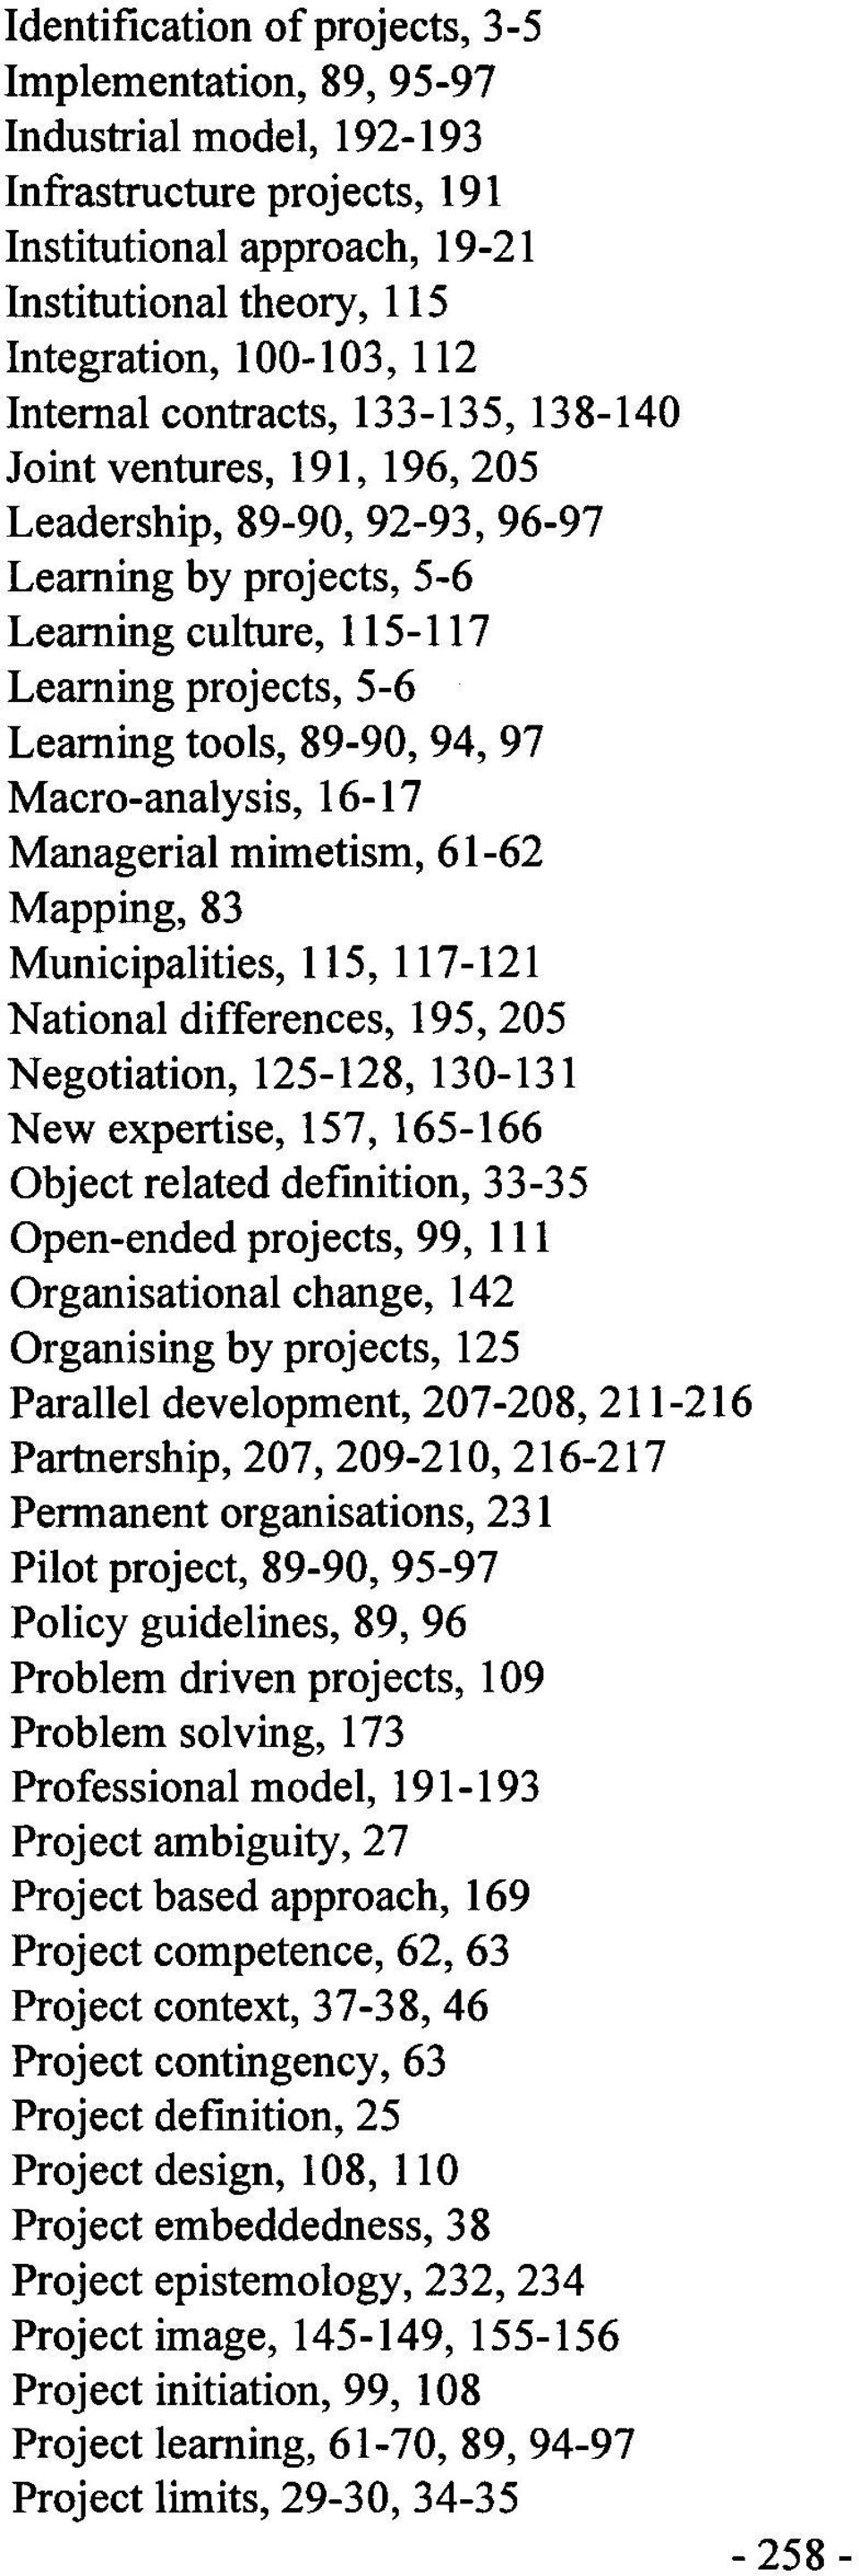 97 Macro-analysis, 16-17 Managerial mimetism, 61-62 Mapping, 83 Municipalities, 115, 117-121 National differences, 195,205 Negotiation, 125-128, 130-131 New expertise, 157, 165-166 Object related